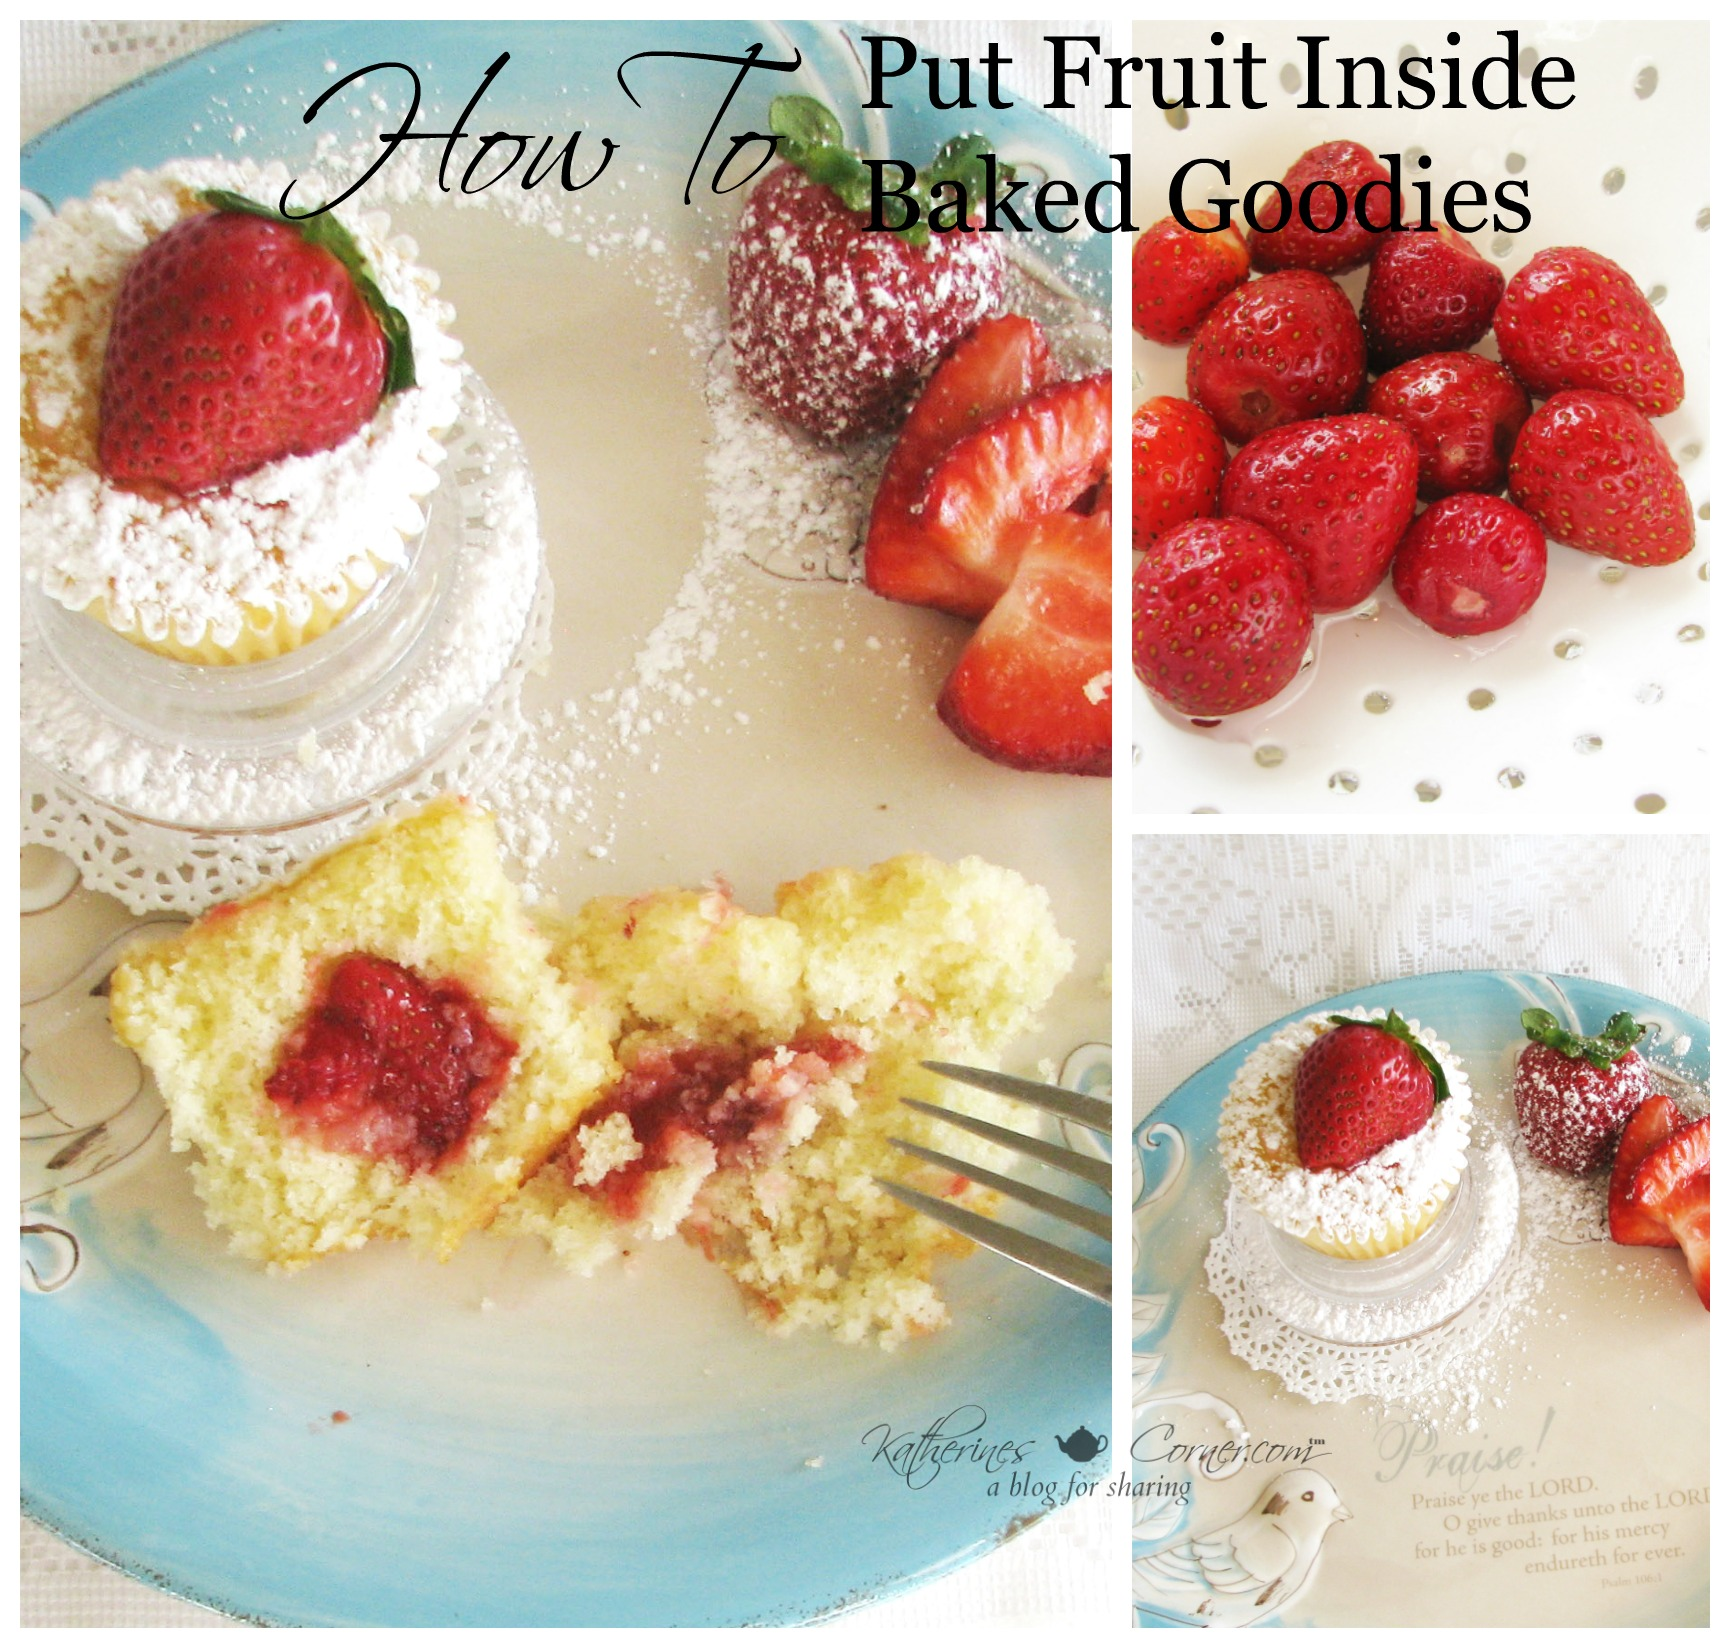 How to Put Fruit Inside Baked Goodies